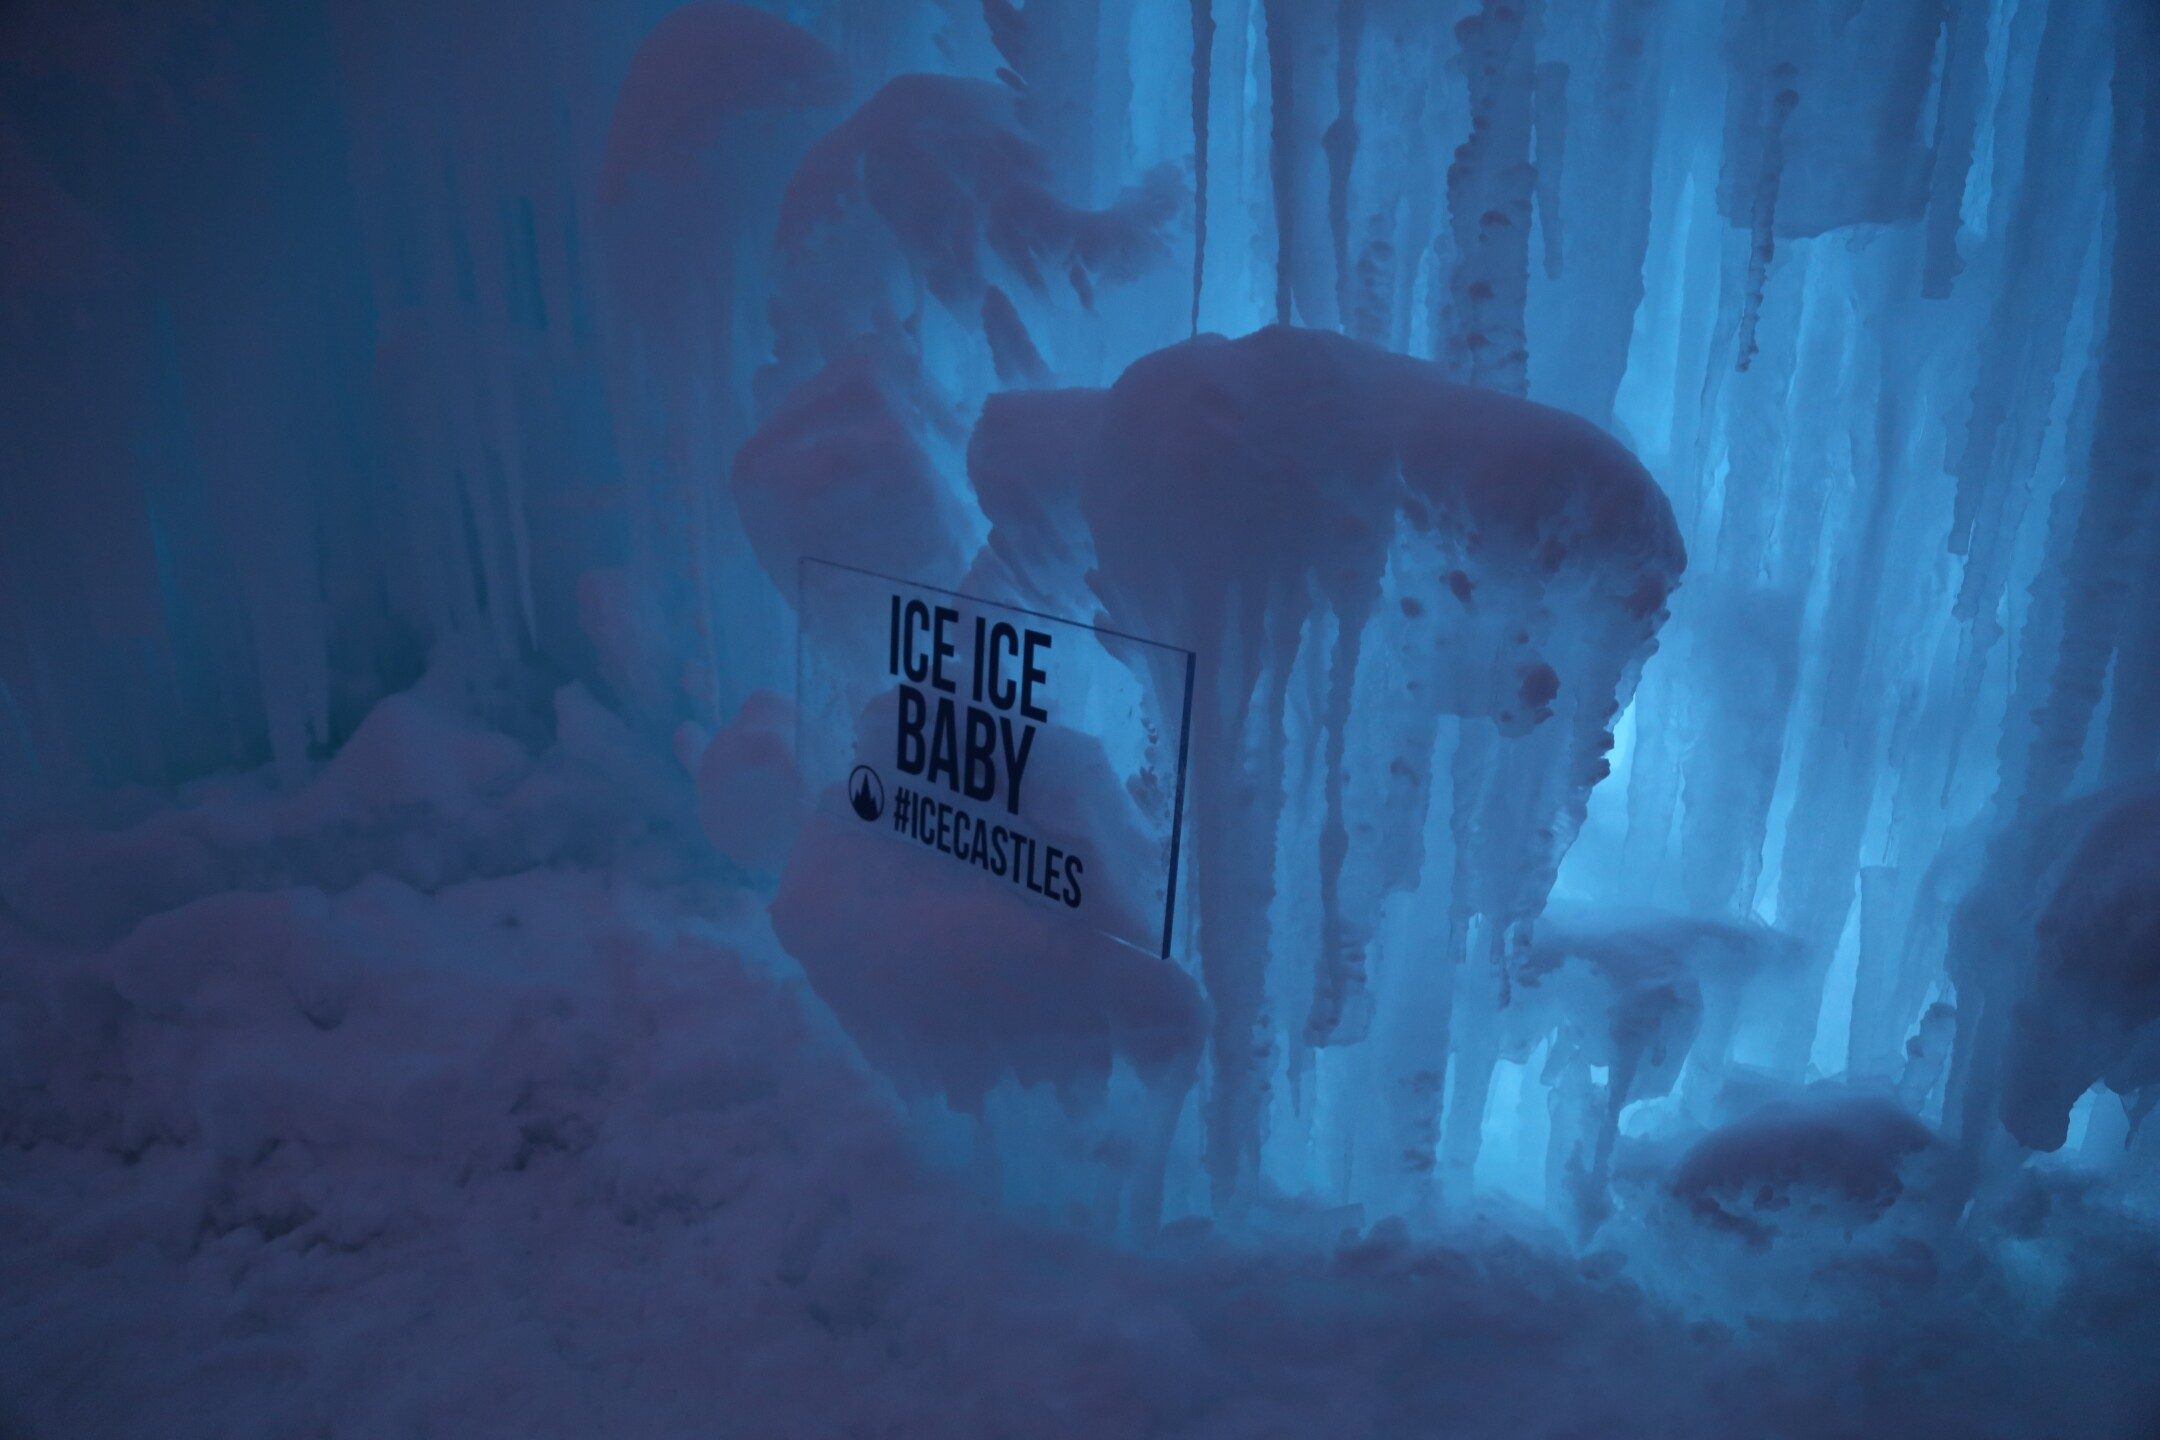 Guests come to the Ice Castles in Lake Geneva, WI at night